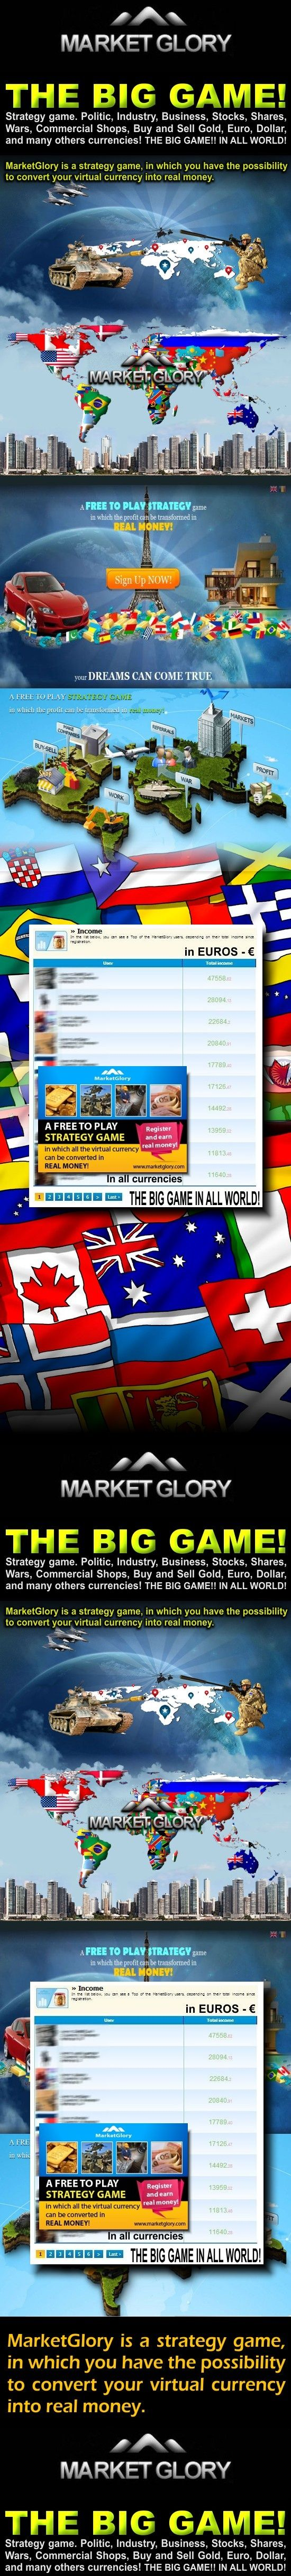 THE BIG GAME! Market Glory * JOIN NOW! Please, visit my presentation page: >> http://marketgloryfree.blogspot.com * Strategy game. Politic, Industry, Business, Stocks, Shares, Wars, Commercial Shops, Buy and Sell Gold, Euro, Dollar, and many others currencies! THE BIG GAME!! IN ALL WORLD! MarketGlory is a strategy game, in which you have the possibility to convert your virtual currency into real money. > http://marketgloryfree.blogspot.com